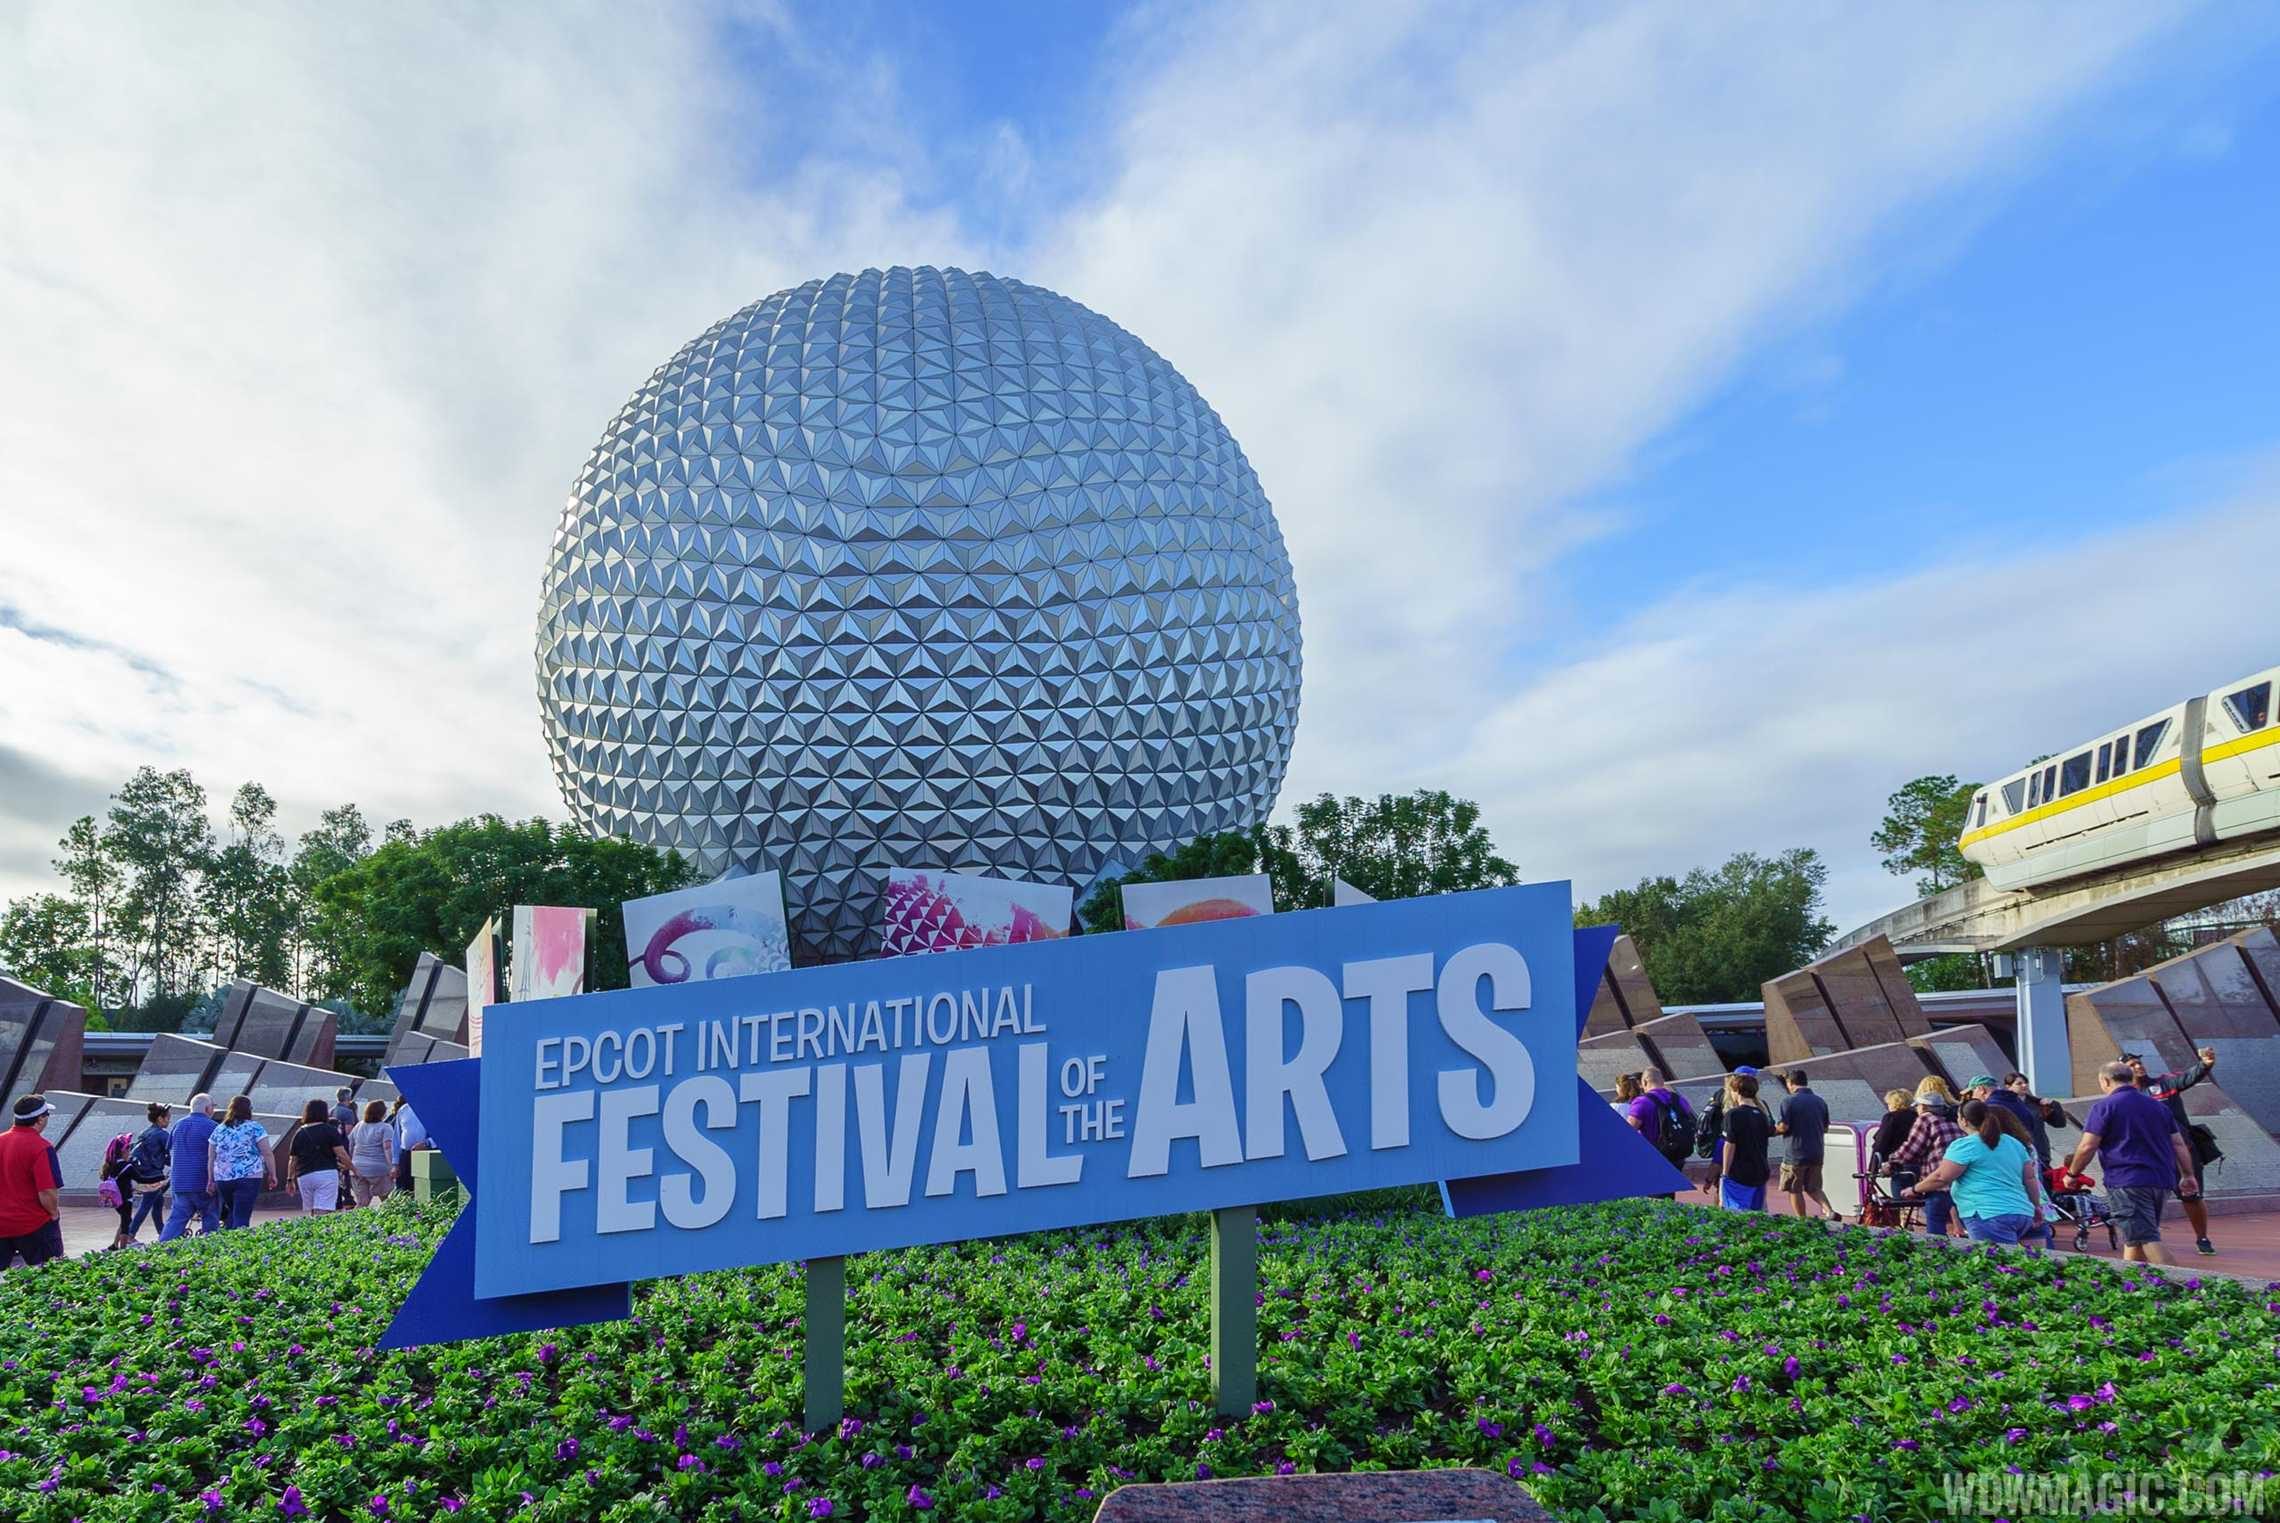 Epcot-International-Festival-of-the-Arts_Full_29397